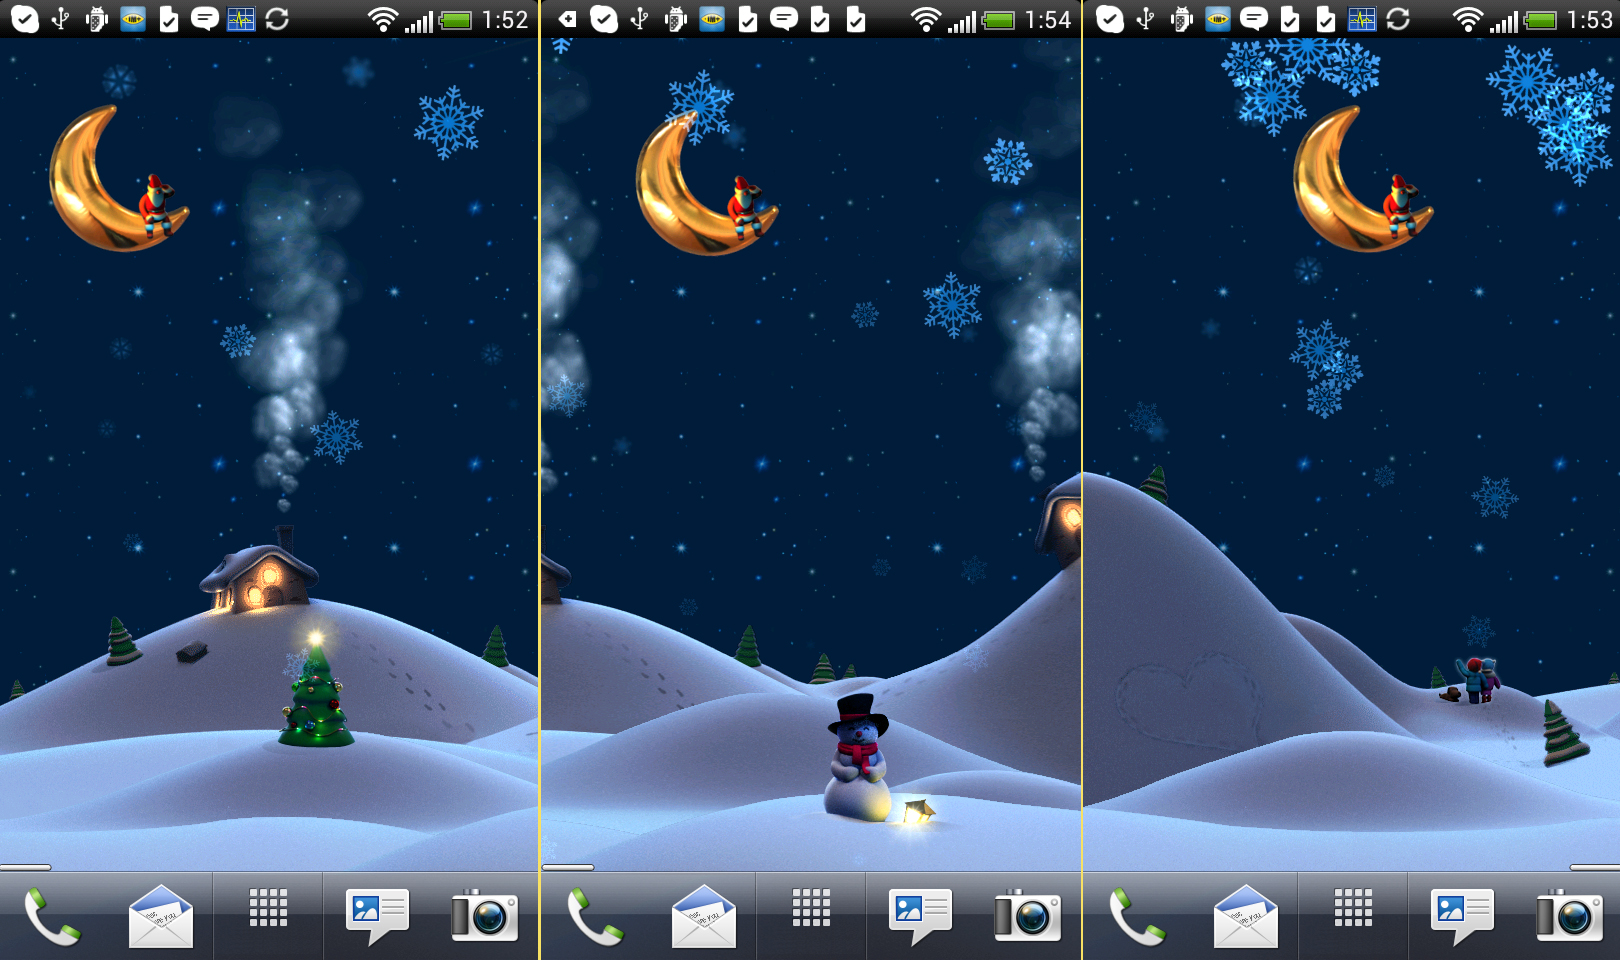 Free Live Wallpaper For Android Mobile: Christmas Live Wallpaper